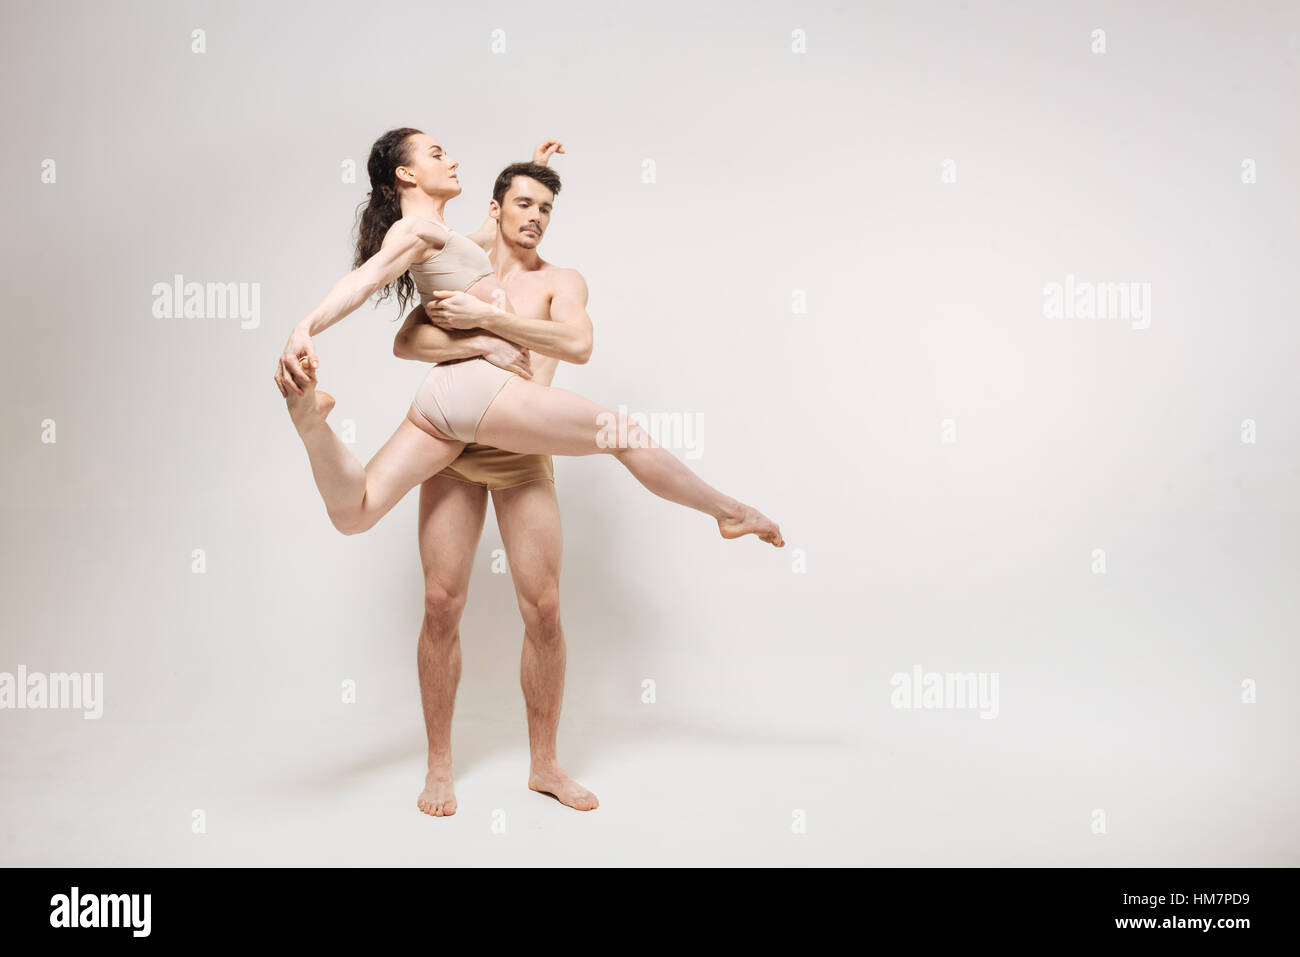 Proficient young ballet dancers performing in the white room - Stock Image